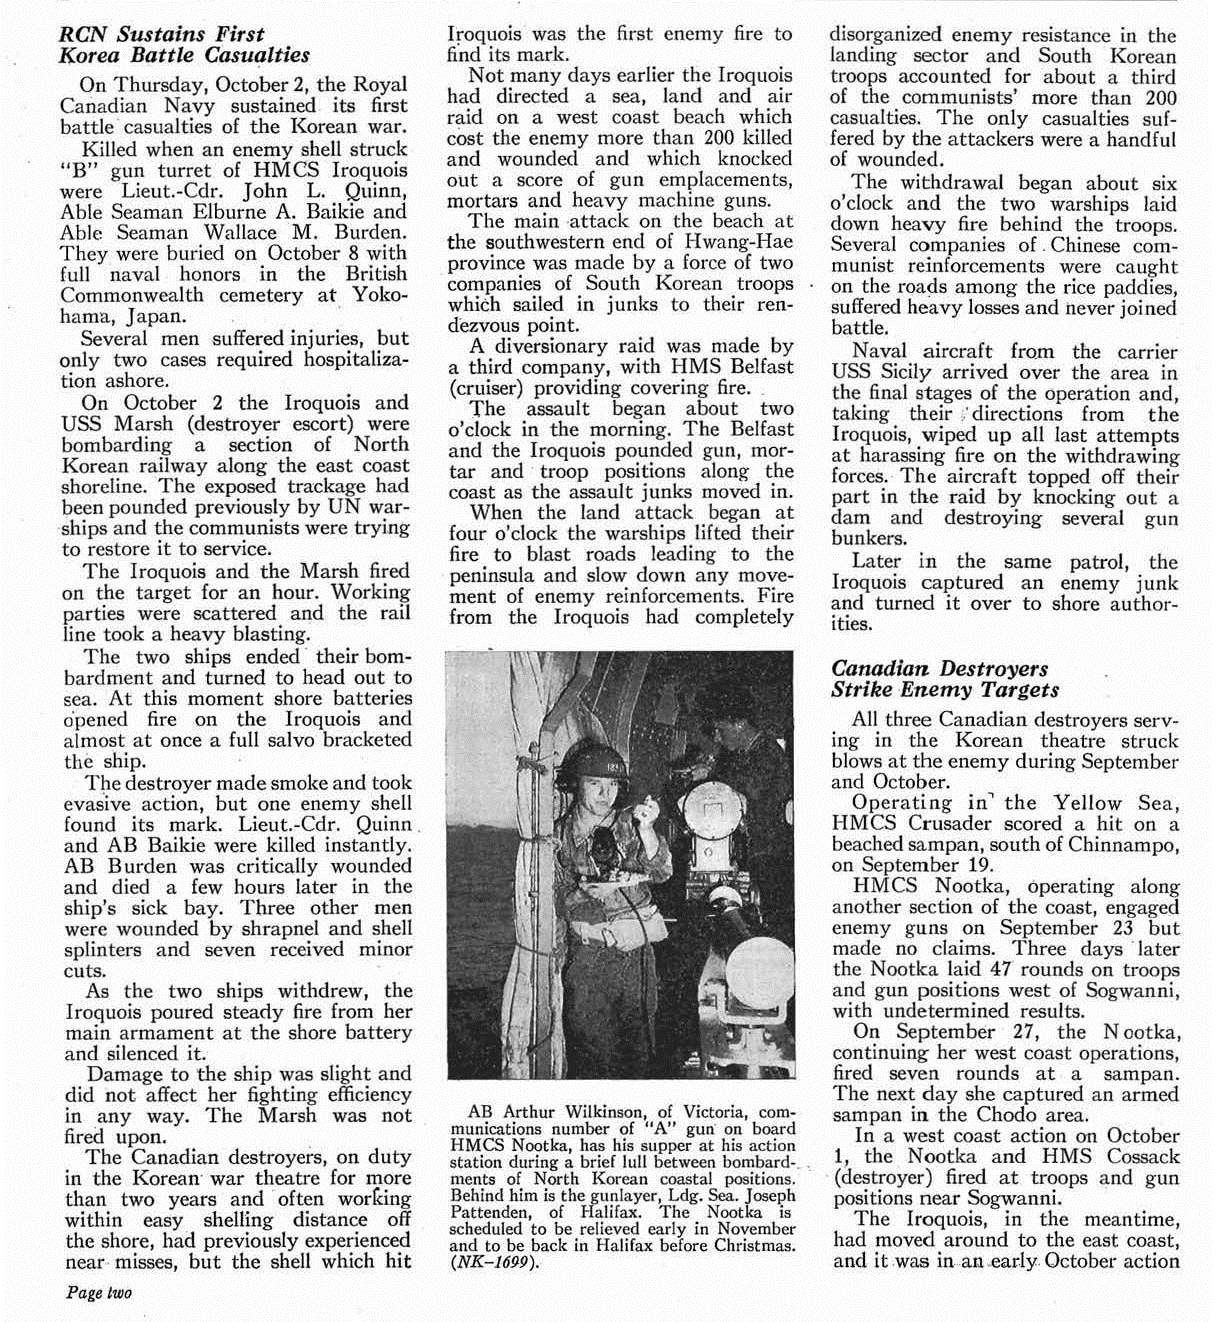 Newspaper Clipping– This news article, relating to the Royal Canadian Navy's first battle casualties of the Korean War, which casualties included AB Burden, appeared in the November 1952 issue (at page 2) of the Crowsnest, the Royal Canadian Navy's magazine.  (Submitted by Navy League Cadet Corps CHAMBLY, Barrie, Ontario.)